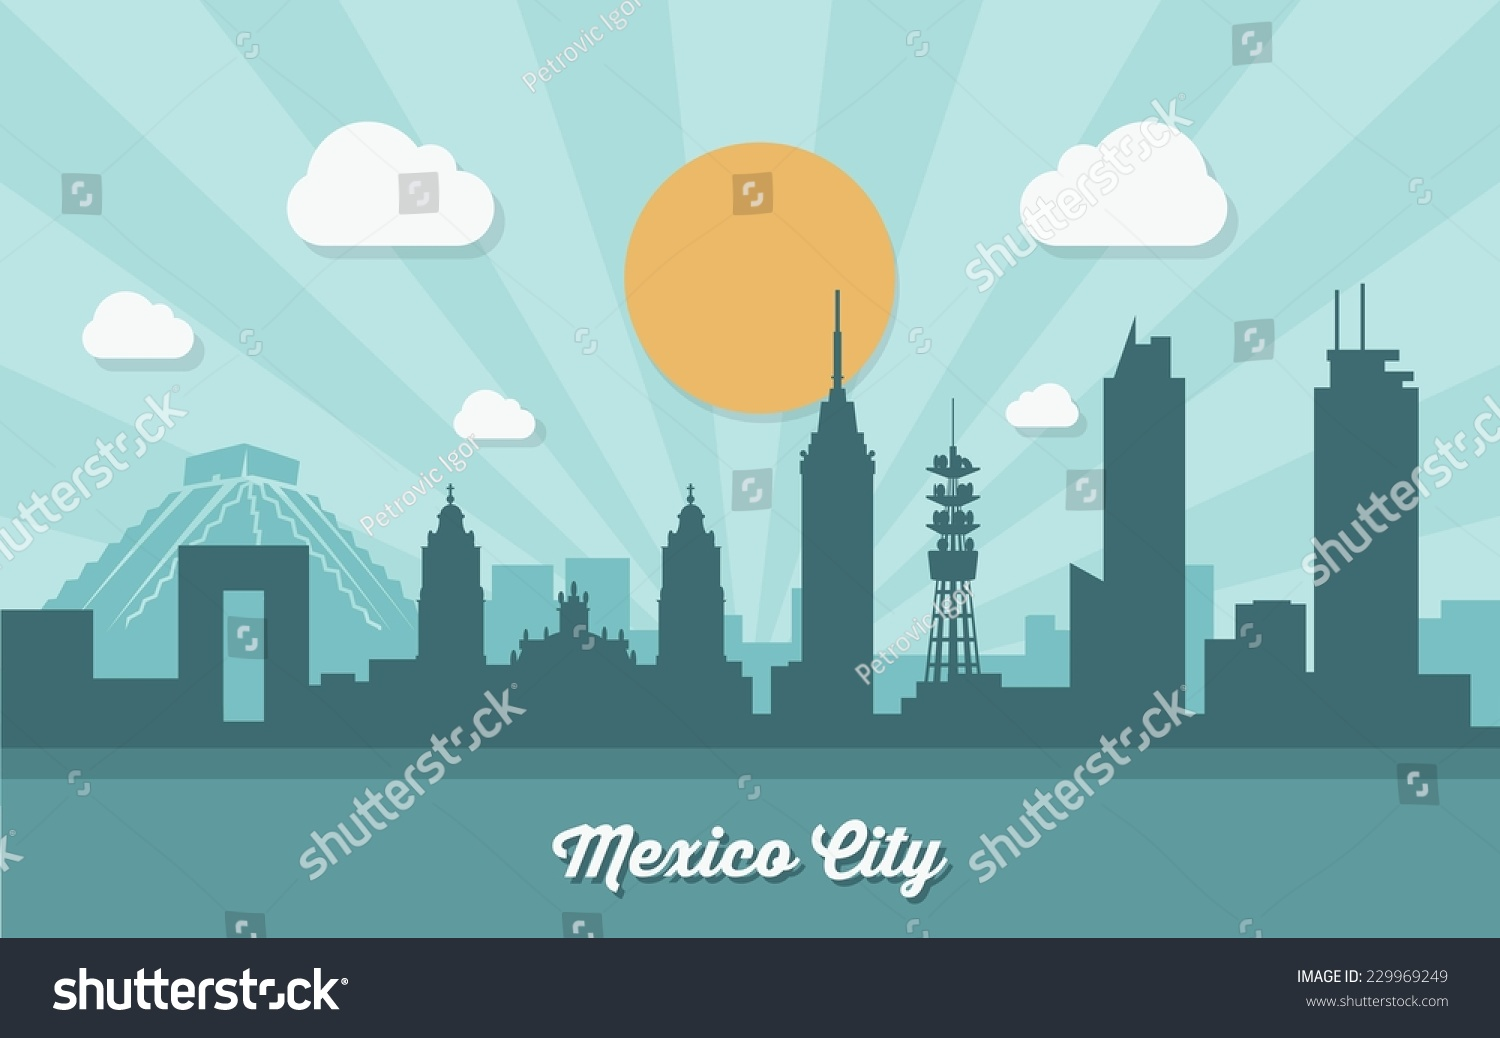 Mexico City Skyline Flat Design Vector Stock Vector